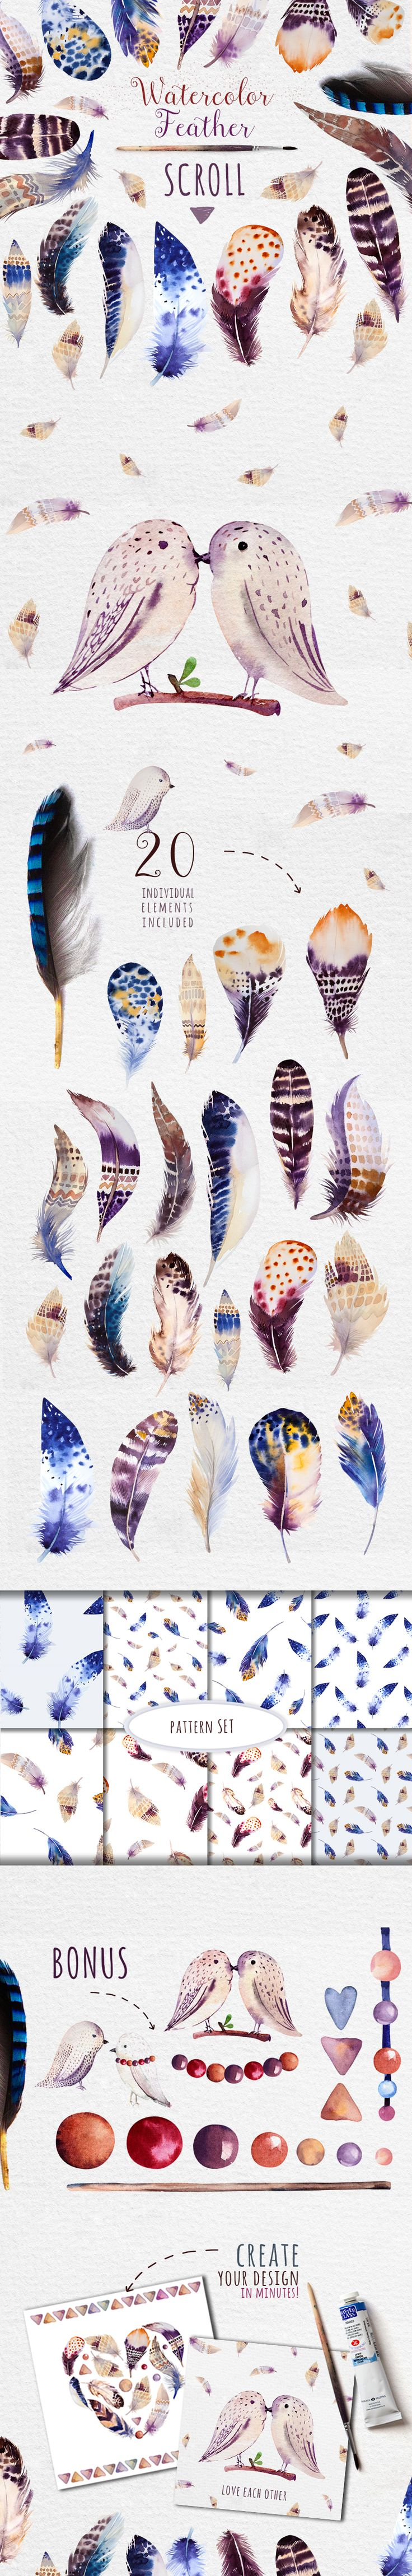 Watercolor feather DIY II by Peace ART on Creative Market